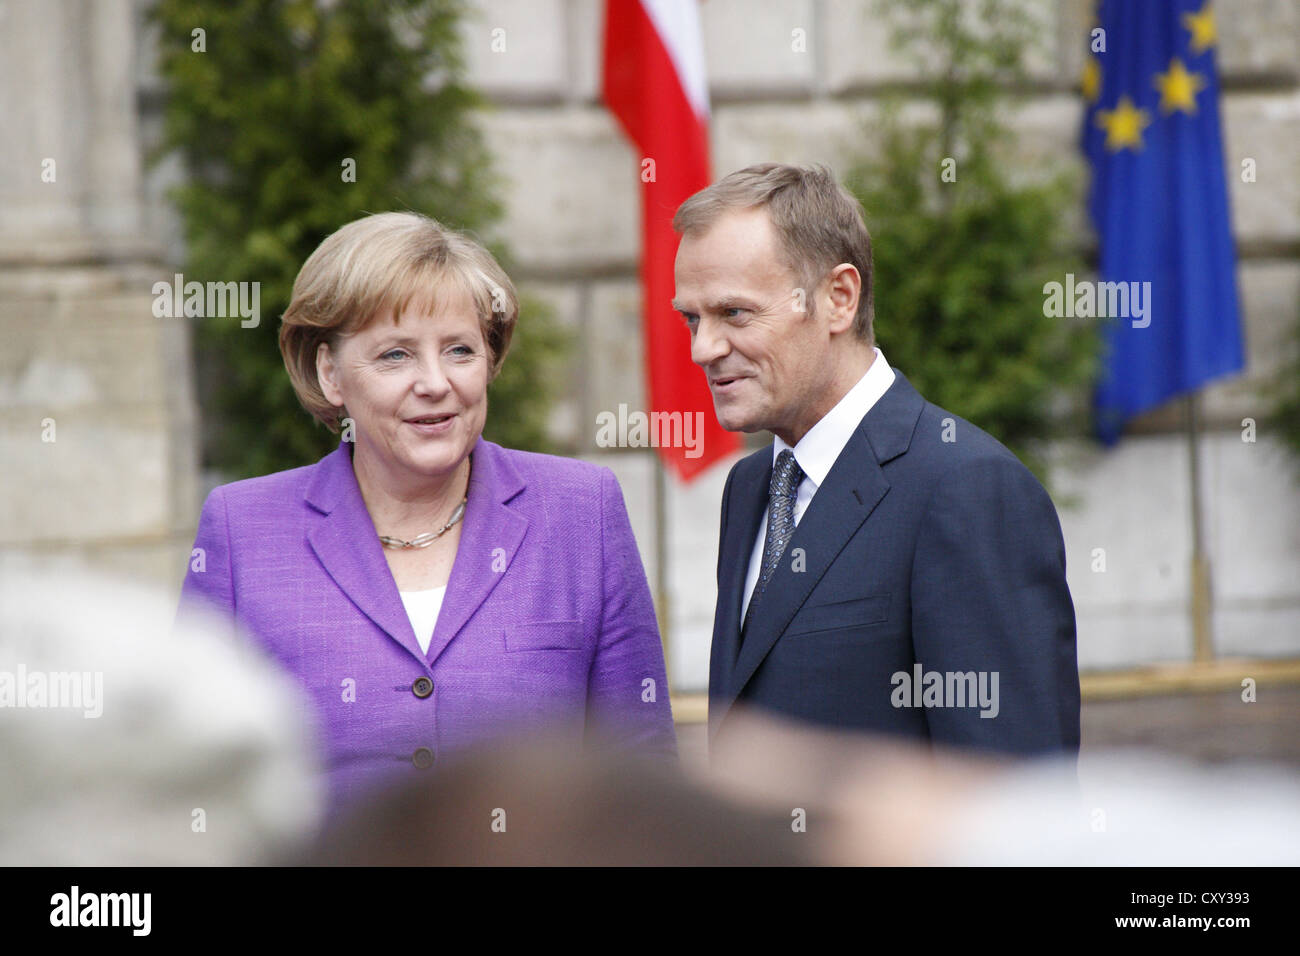 Angela Merkel and Donald Tusk, during the 20th anniversary of the fall of communism, 04/06/2009, in Krakow, Poland, - Stock Image